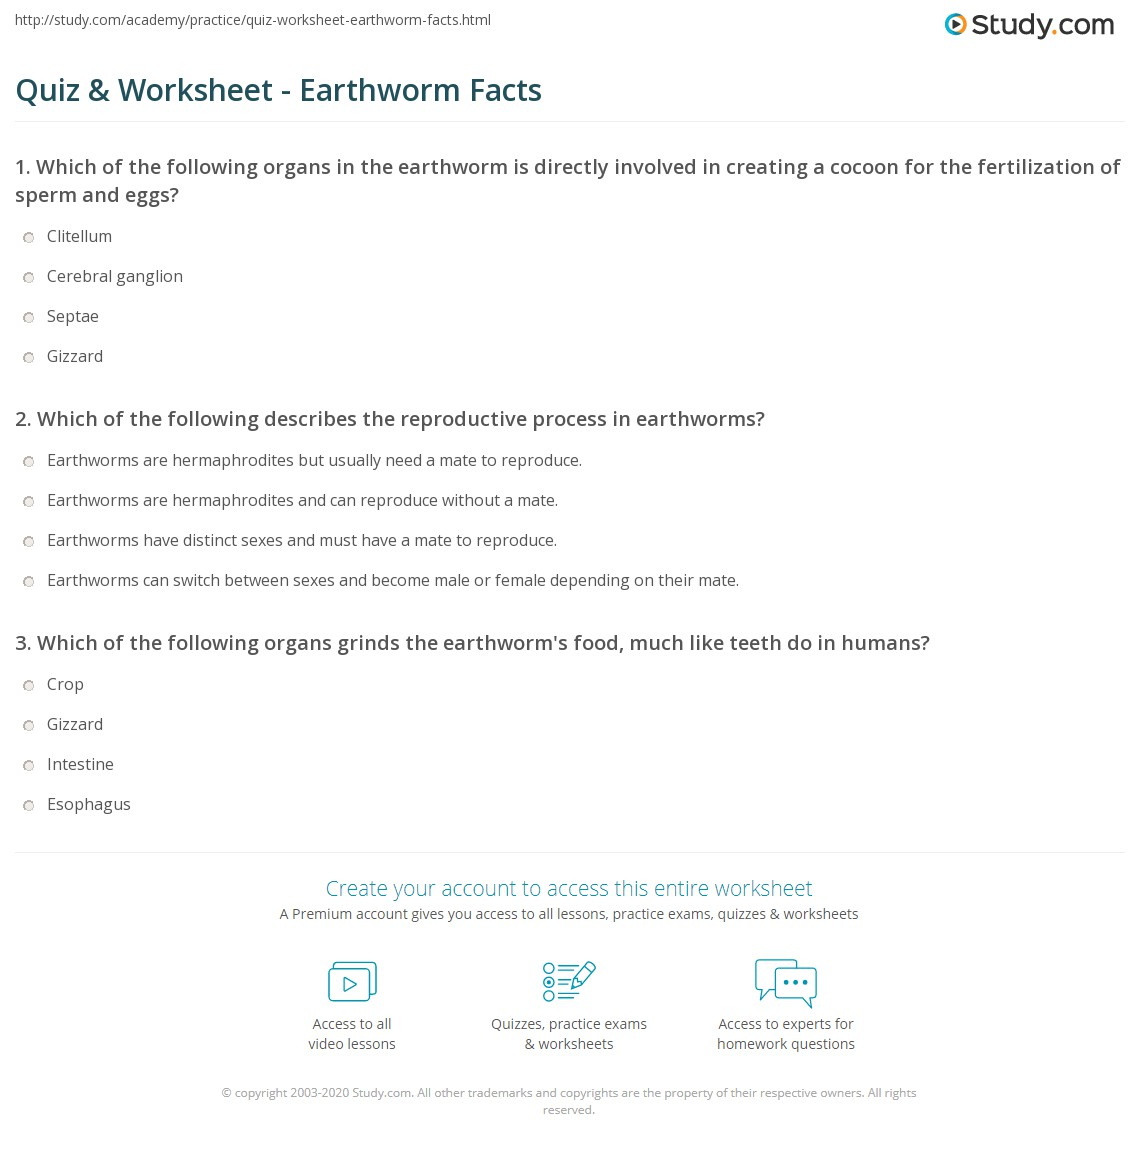 Quiz Worksheet Earthworm Facts – Earthworm Worksheet Answers